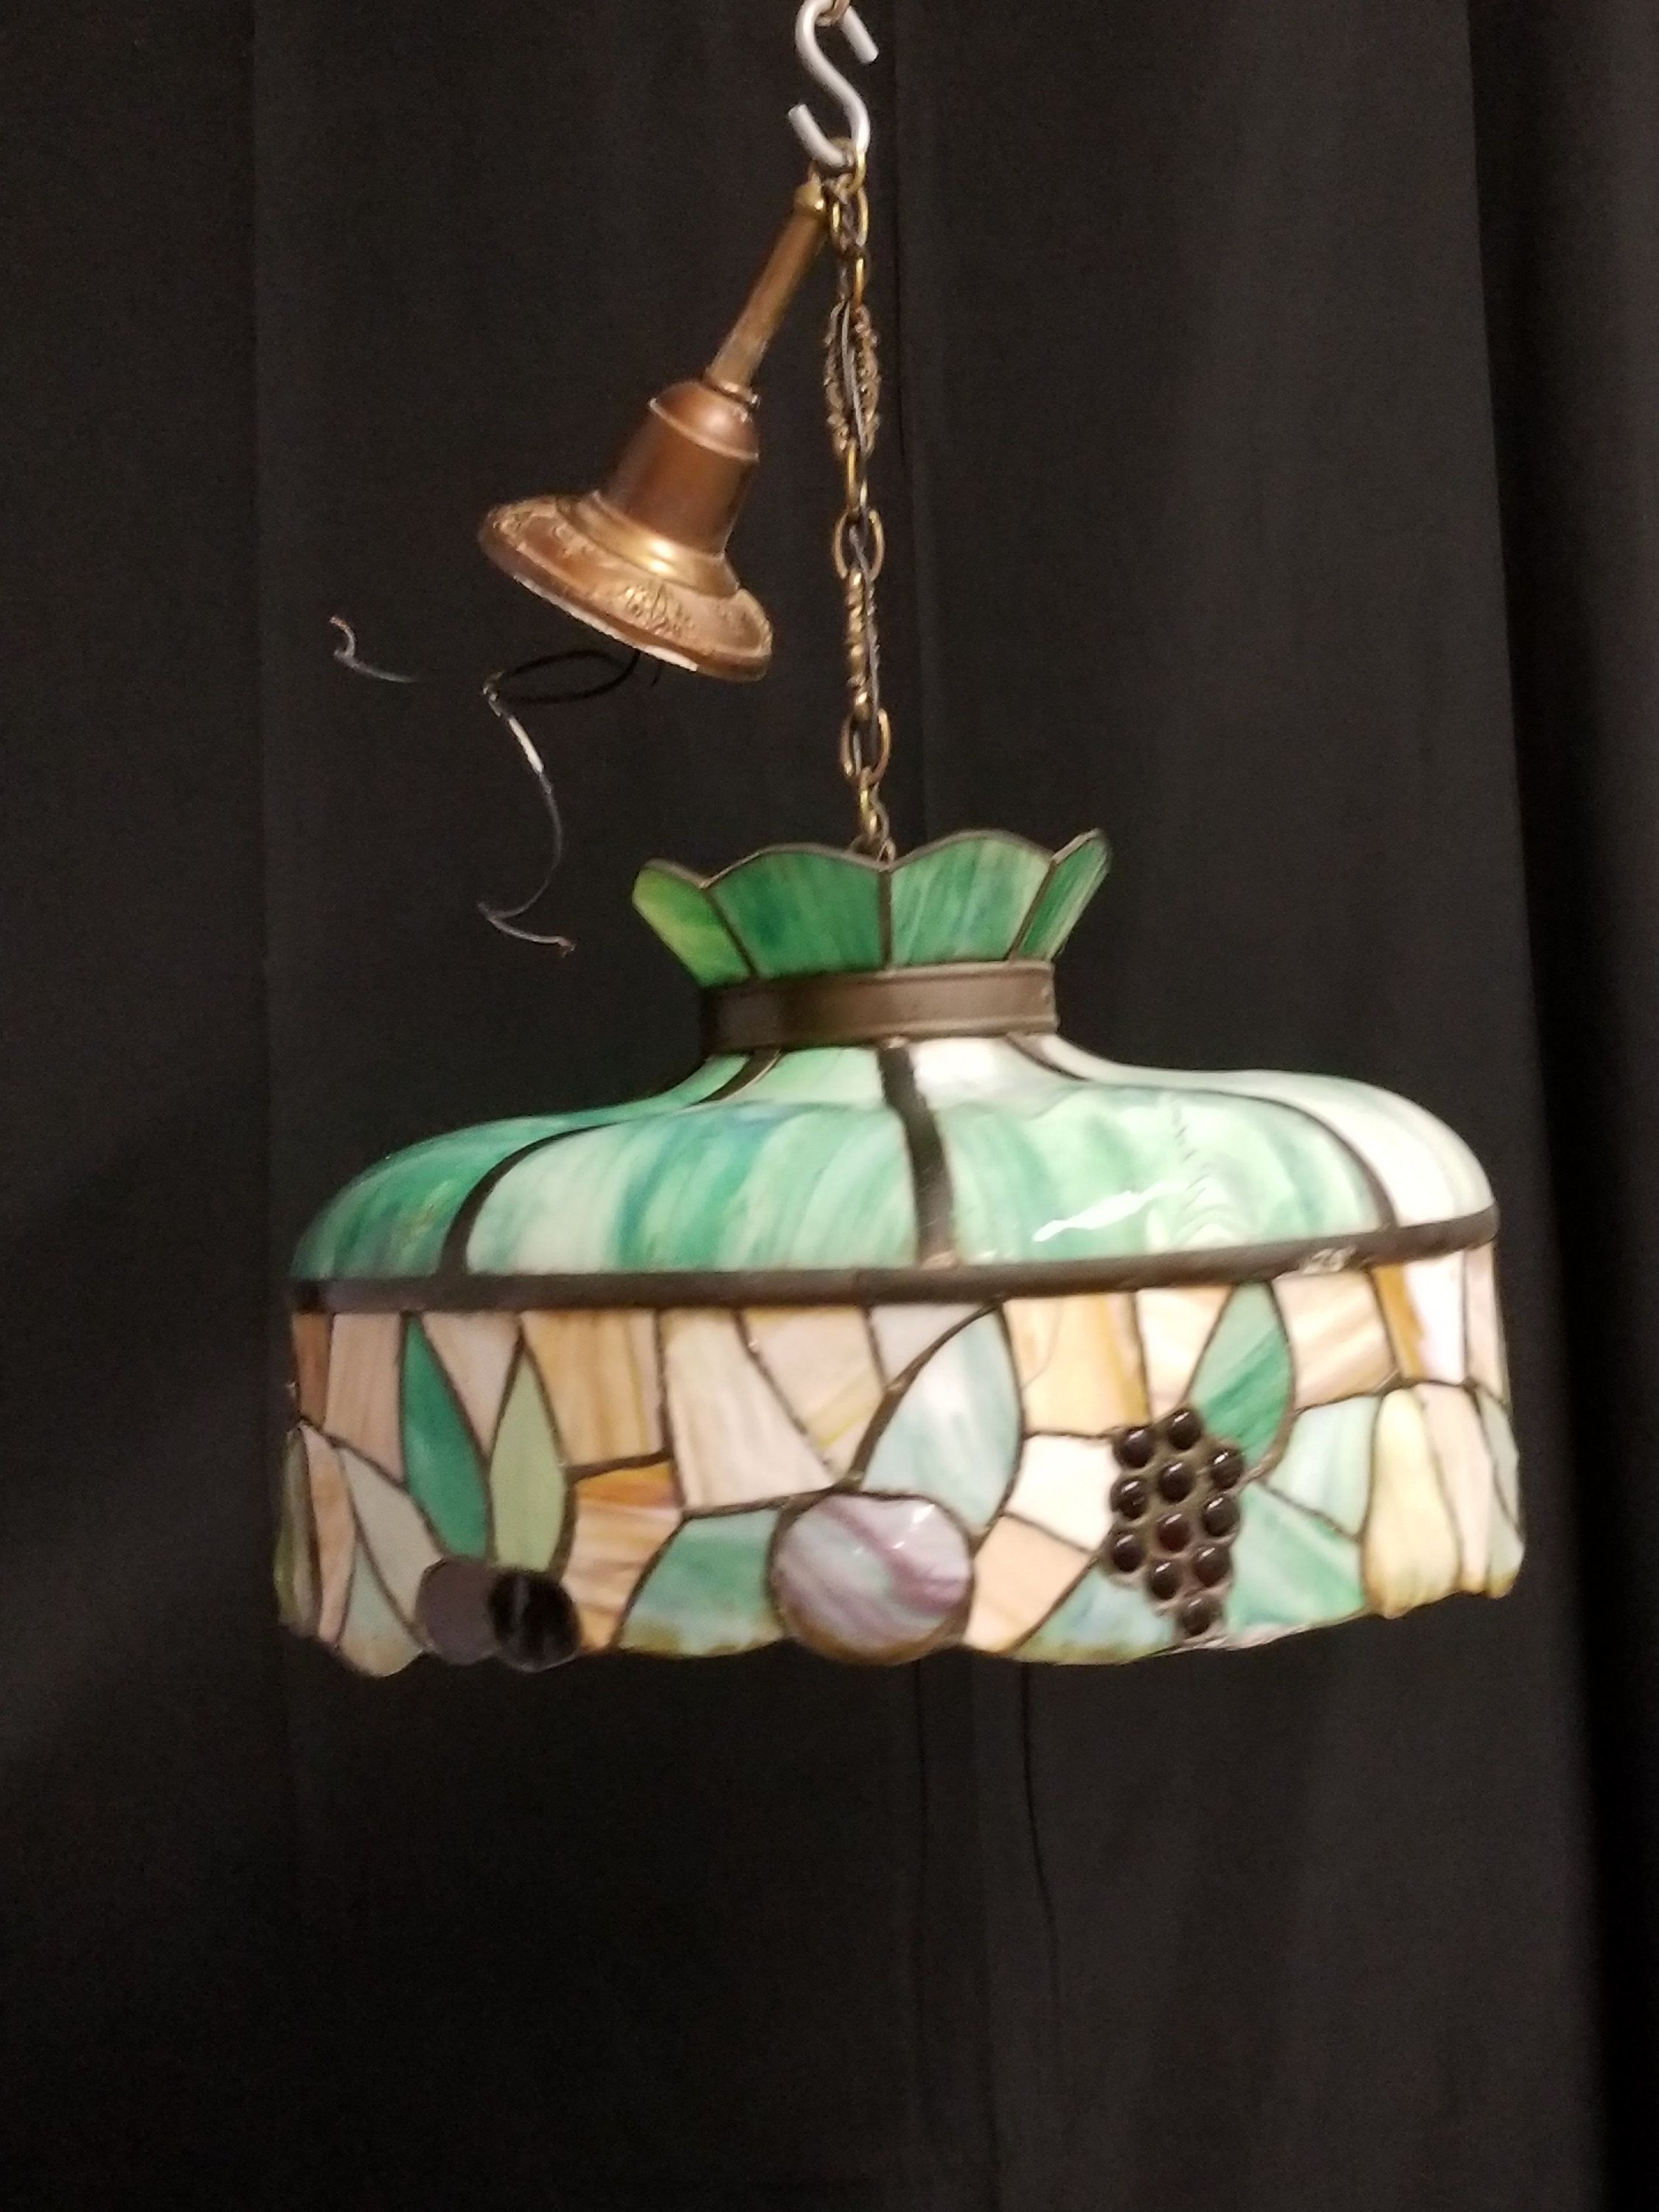 Antique Tiffany Style Lamp Vintage Glass Dome Lamp Large Pendant